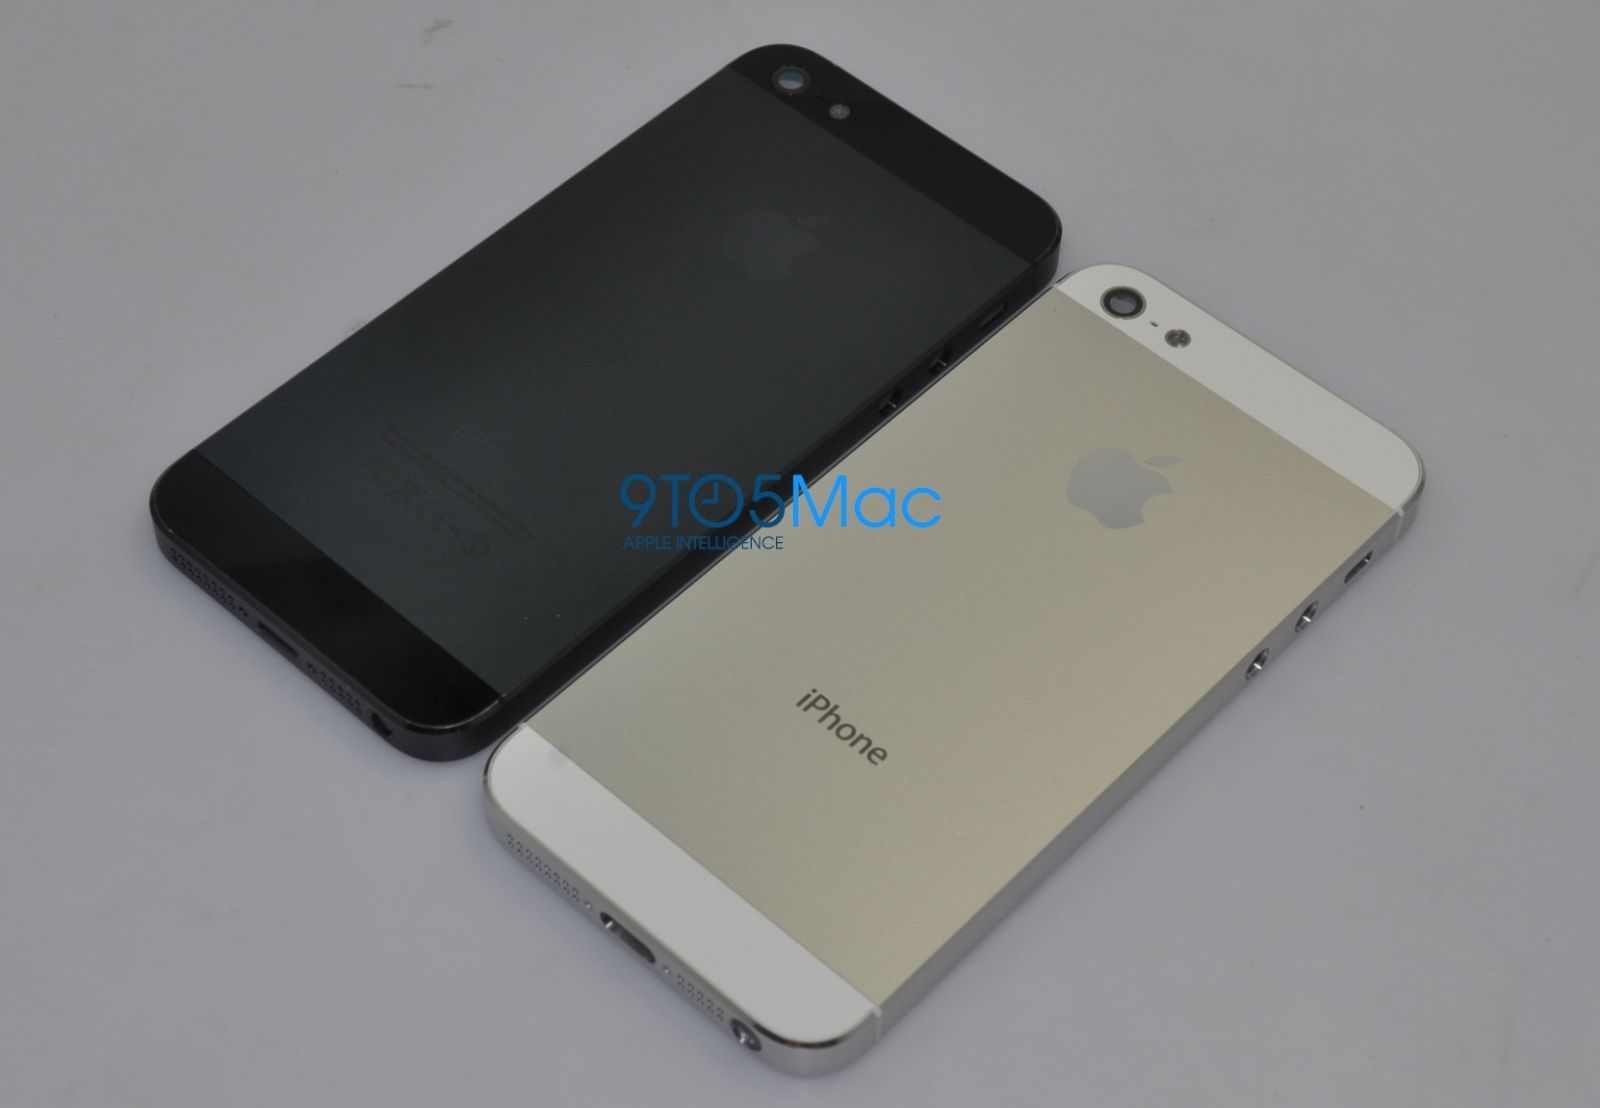 Images of the new iPhone 5 case design 